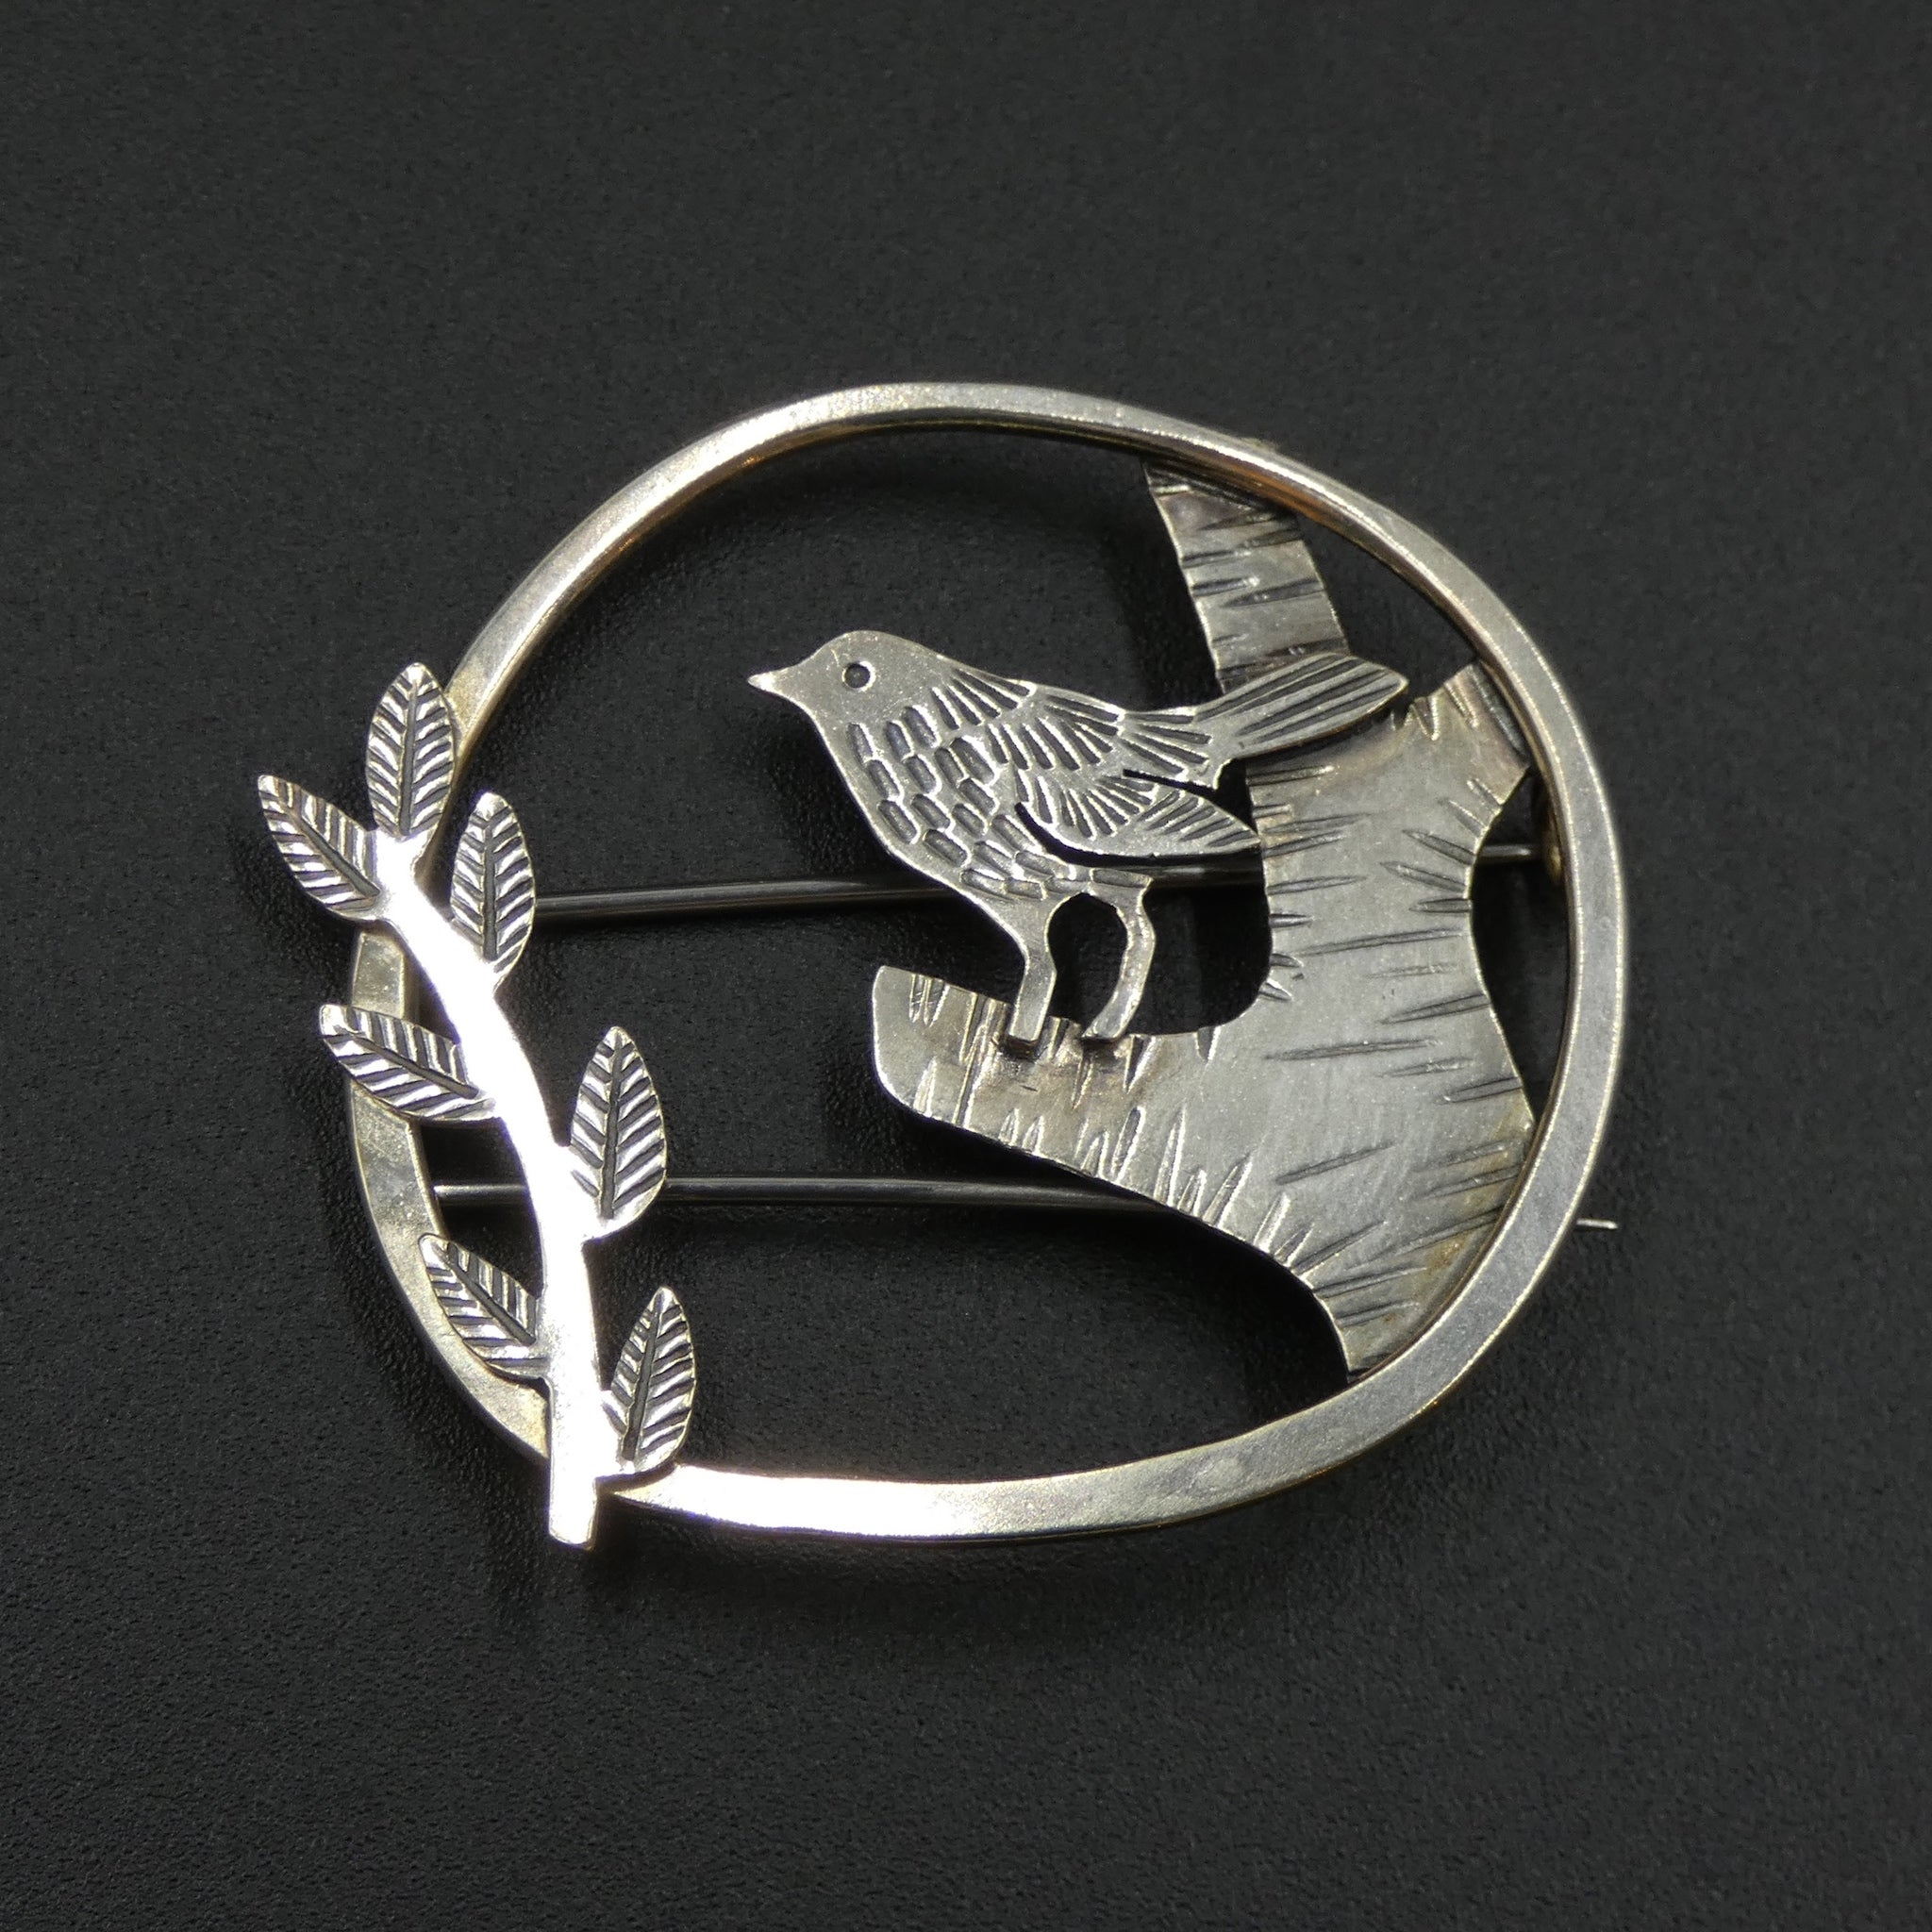 Wren brooch by jeweller Helen Shere